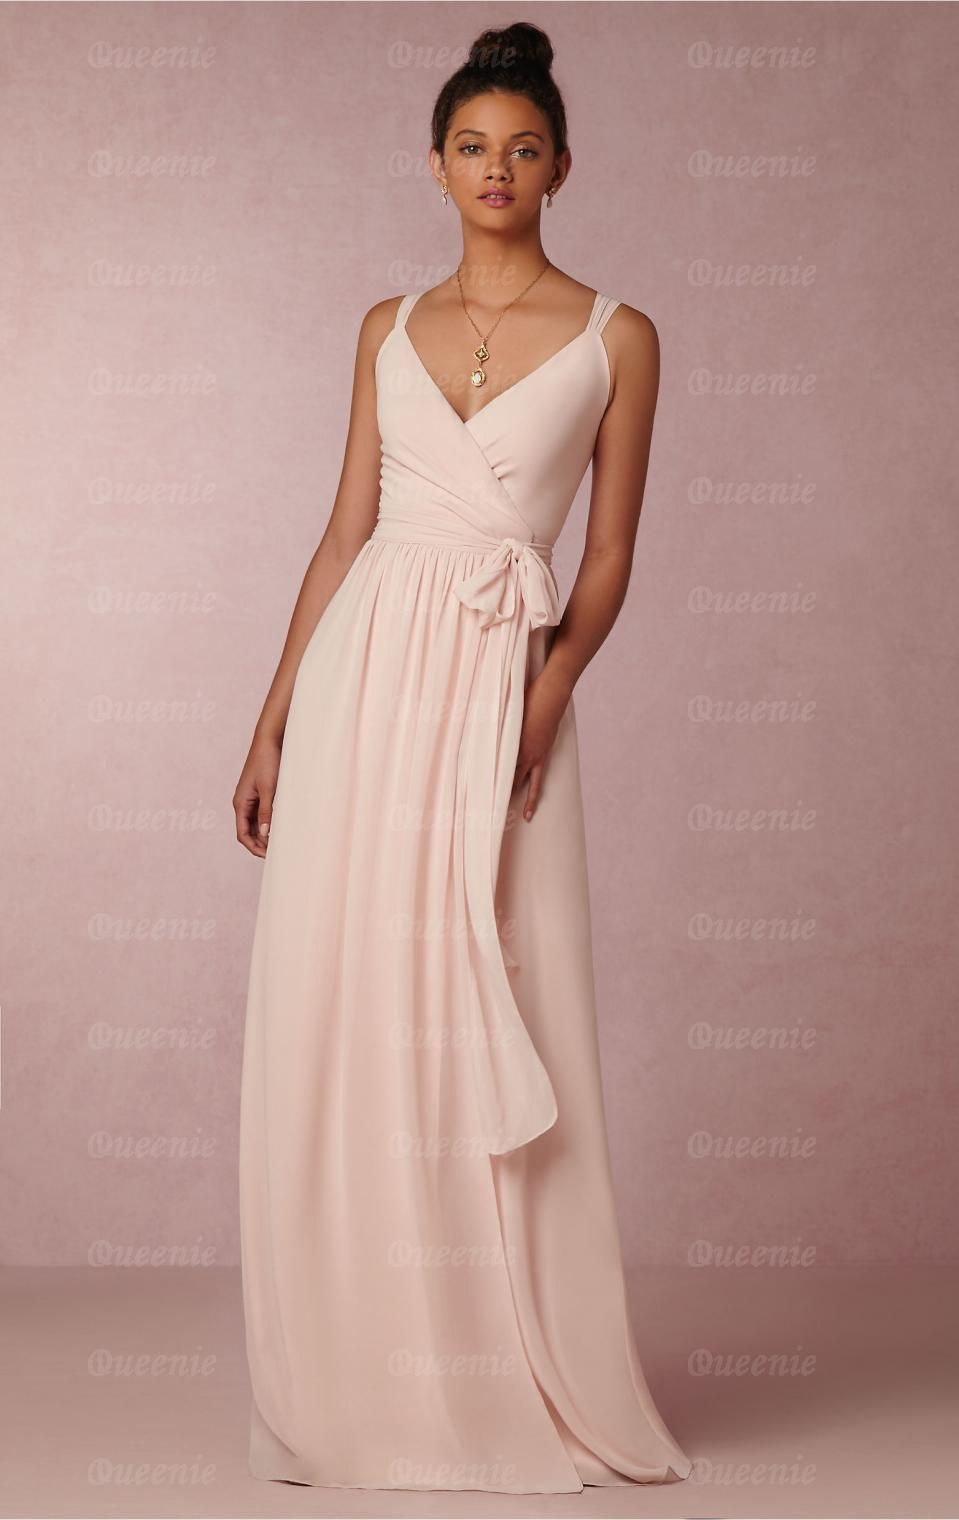 Designer Light Pink Long Bridesmaid Dress Bnnde0000 Uk